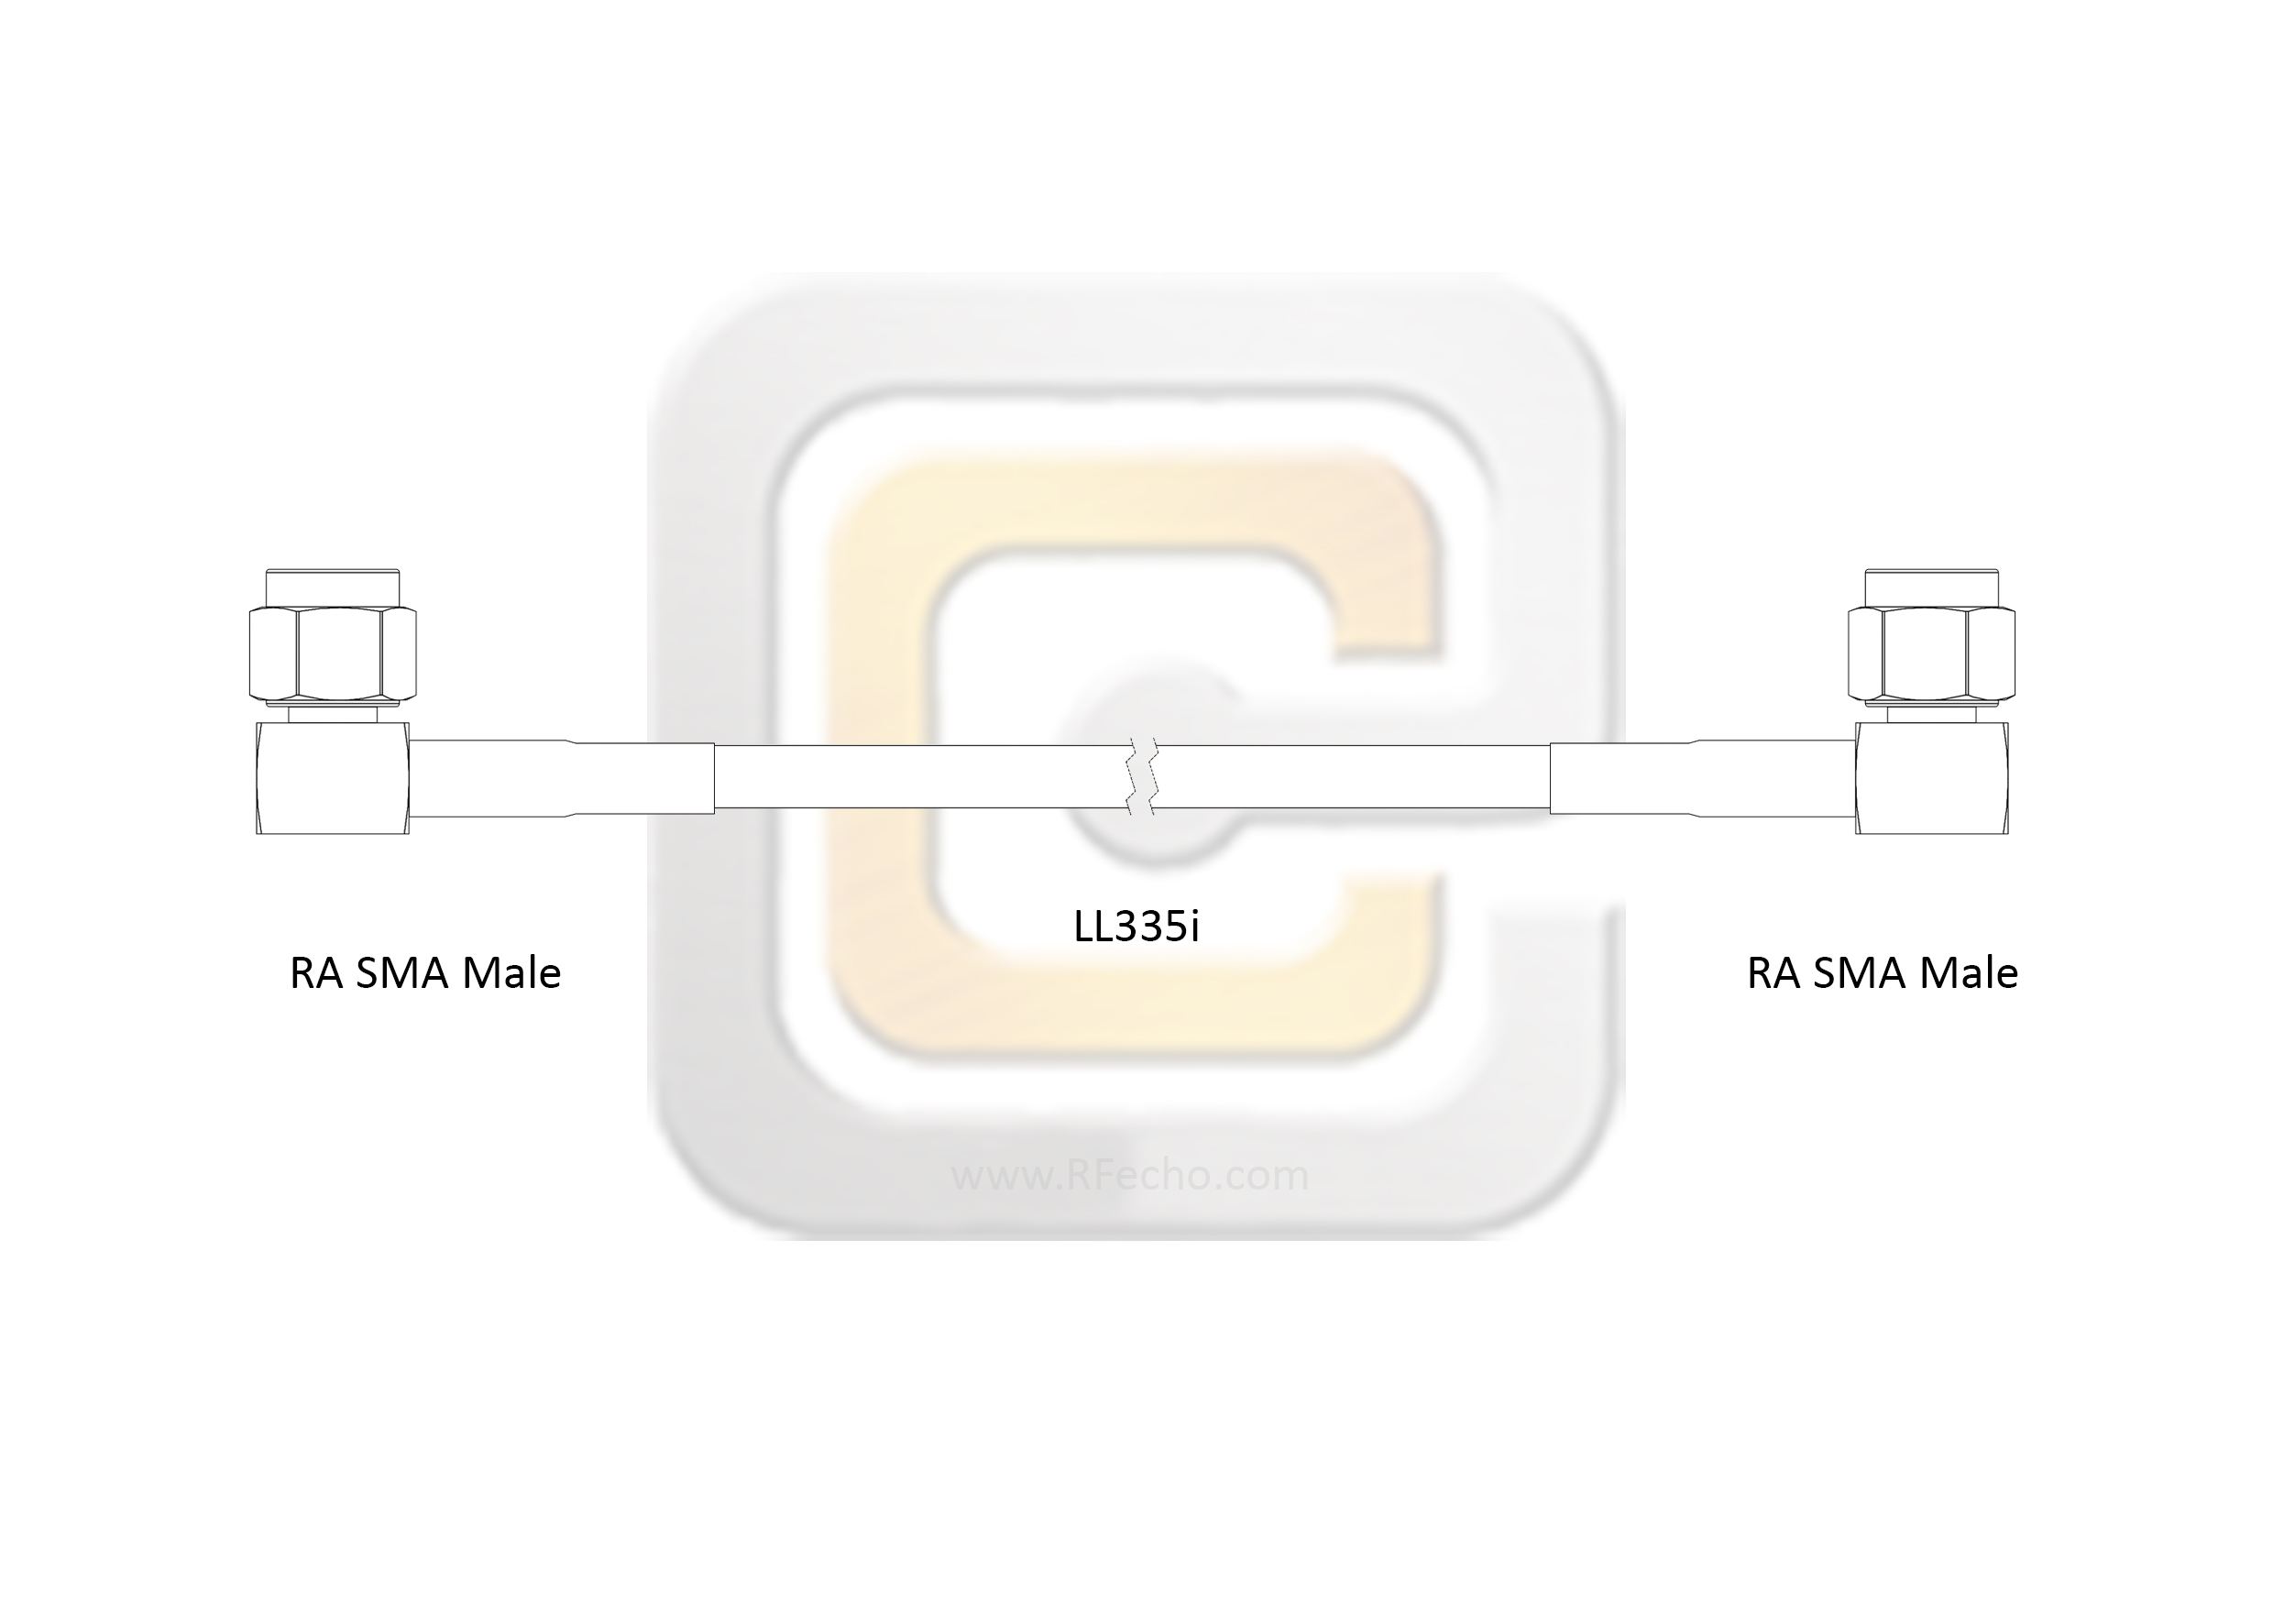 F040 321R0 321R0 180 C outline Low Loss Right Angle SMA Male to Right Angle SMA Male, 18 GHz, Composite LL335i Coax and RoHS